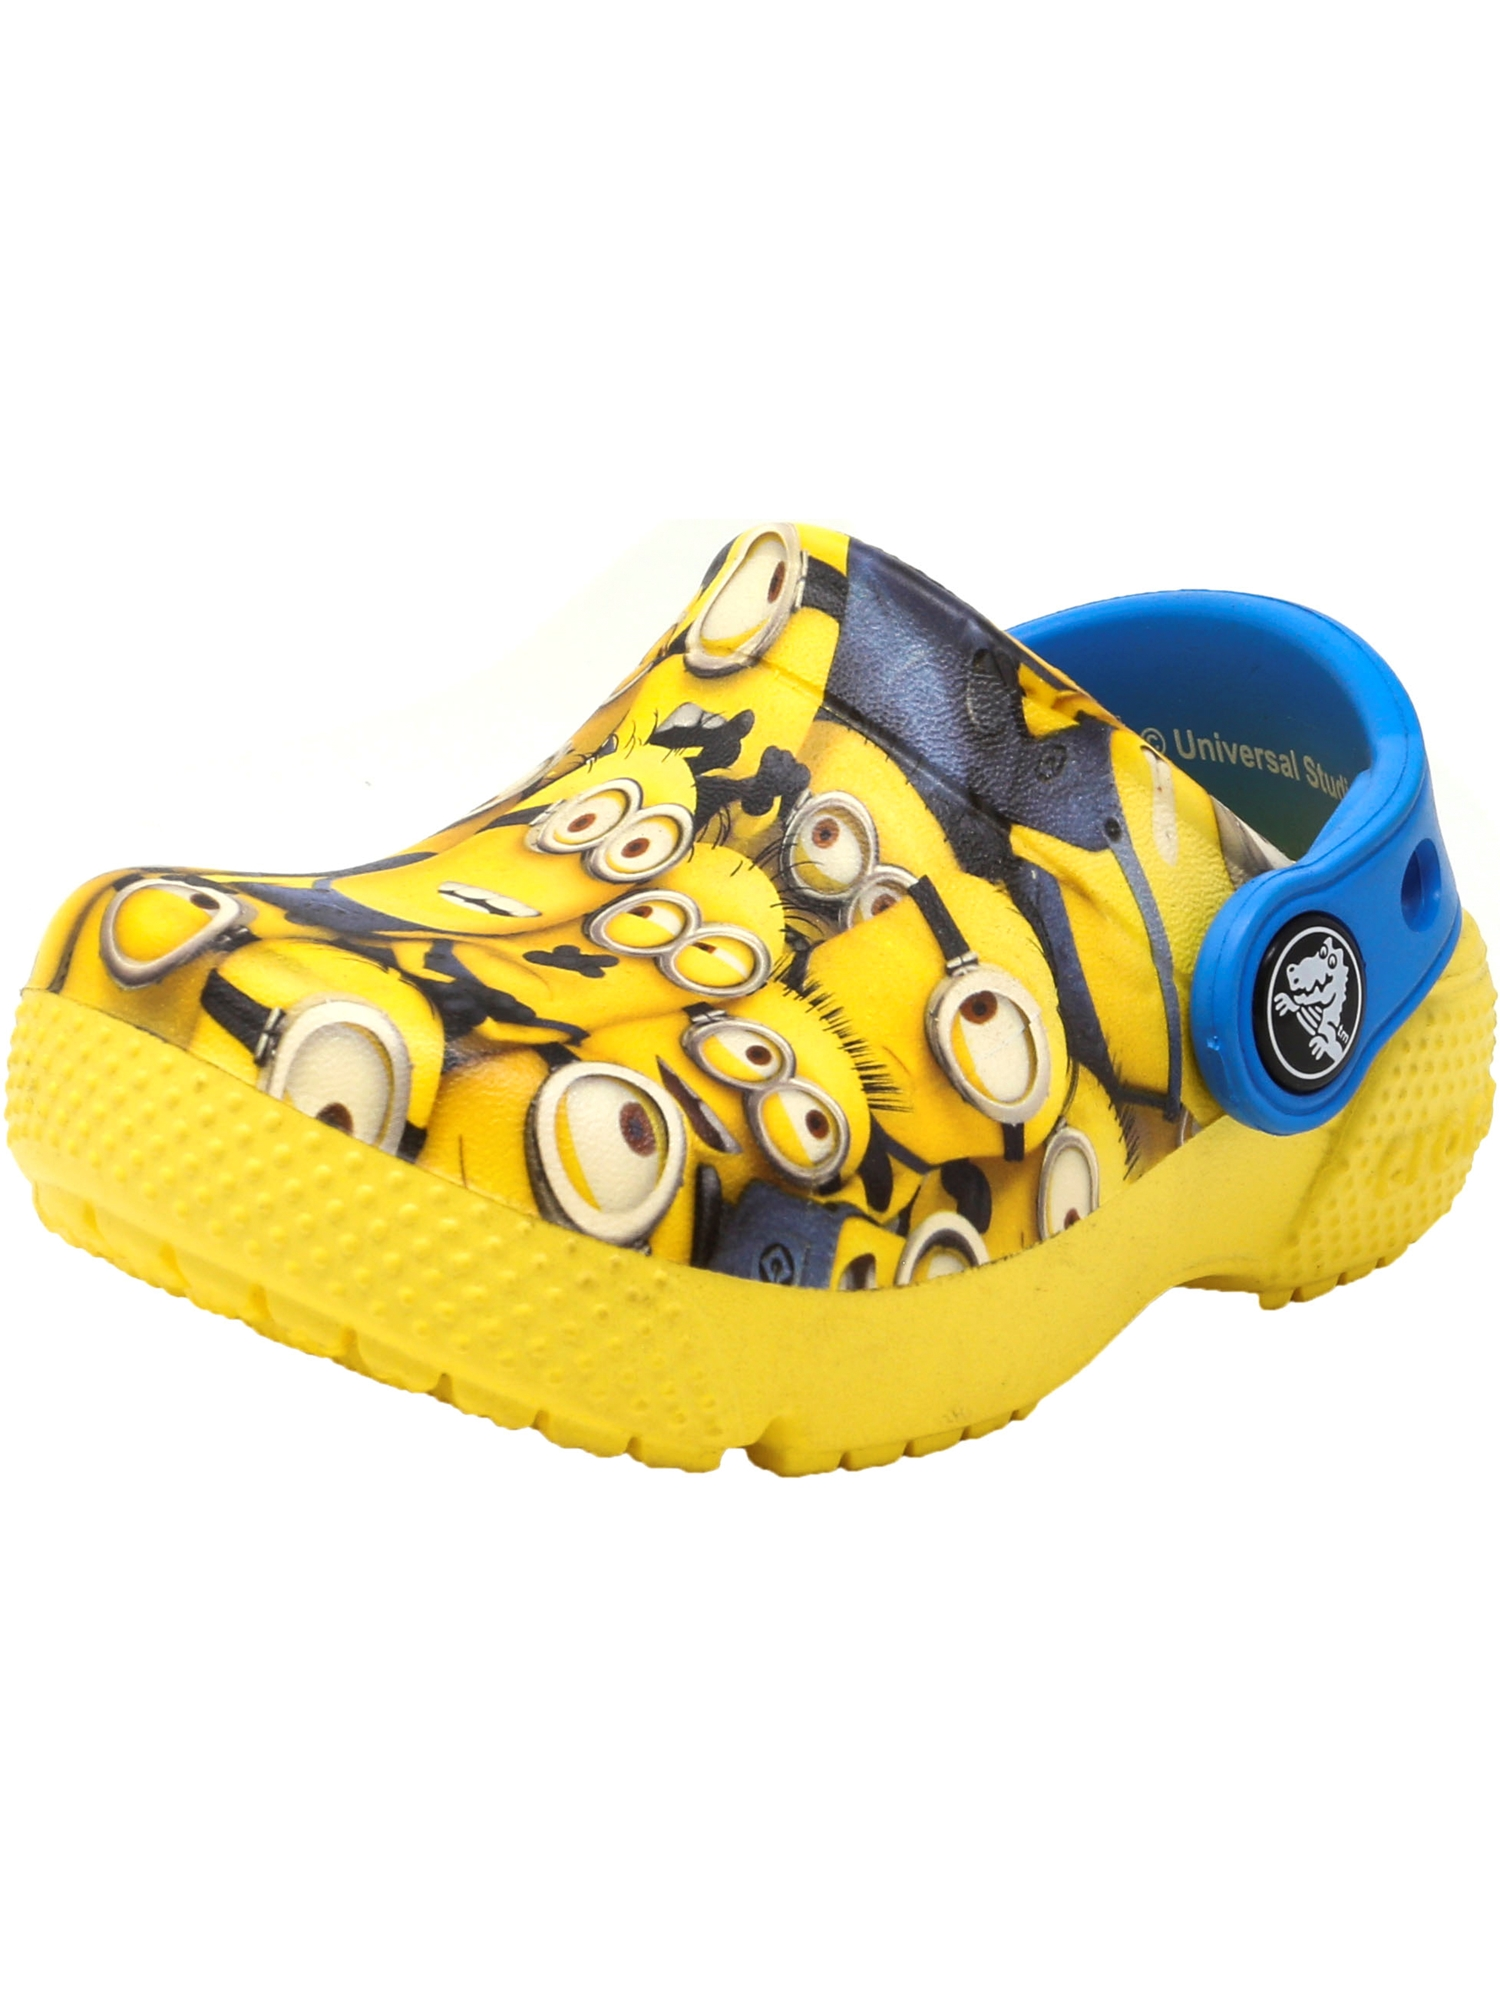 Crocs Crocksfunlab Minions Graphic Sunshine Ankle-High Clogs 1M by Crocs